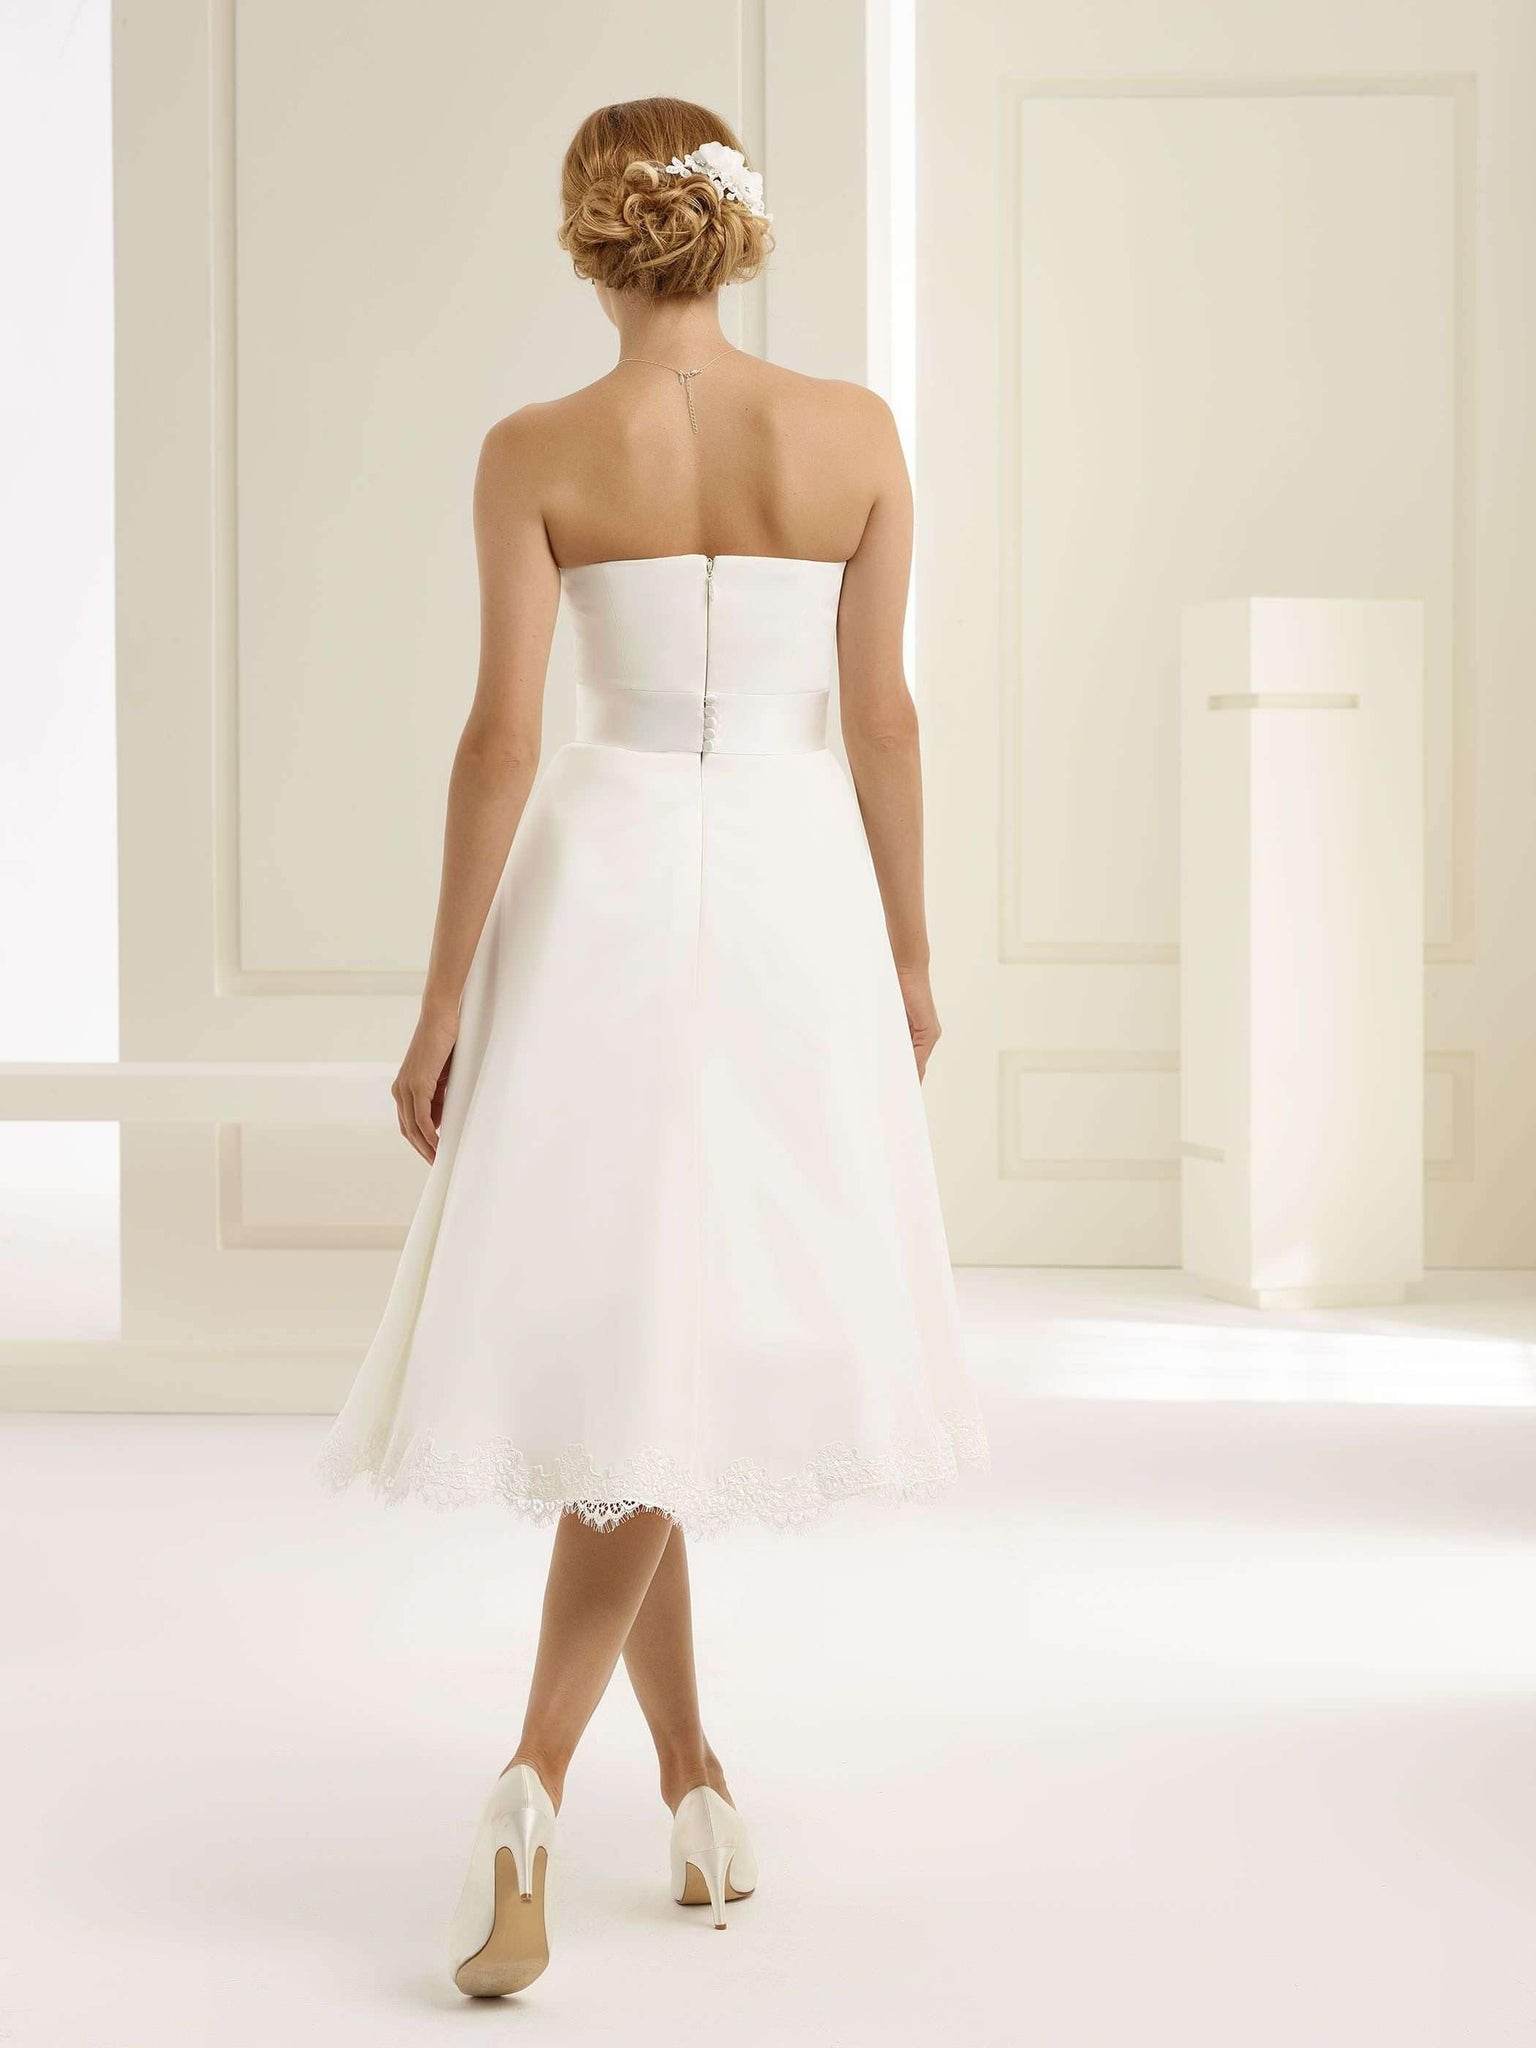 Peonia PLUS - Adore Bridal and Occasion Wear